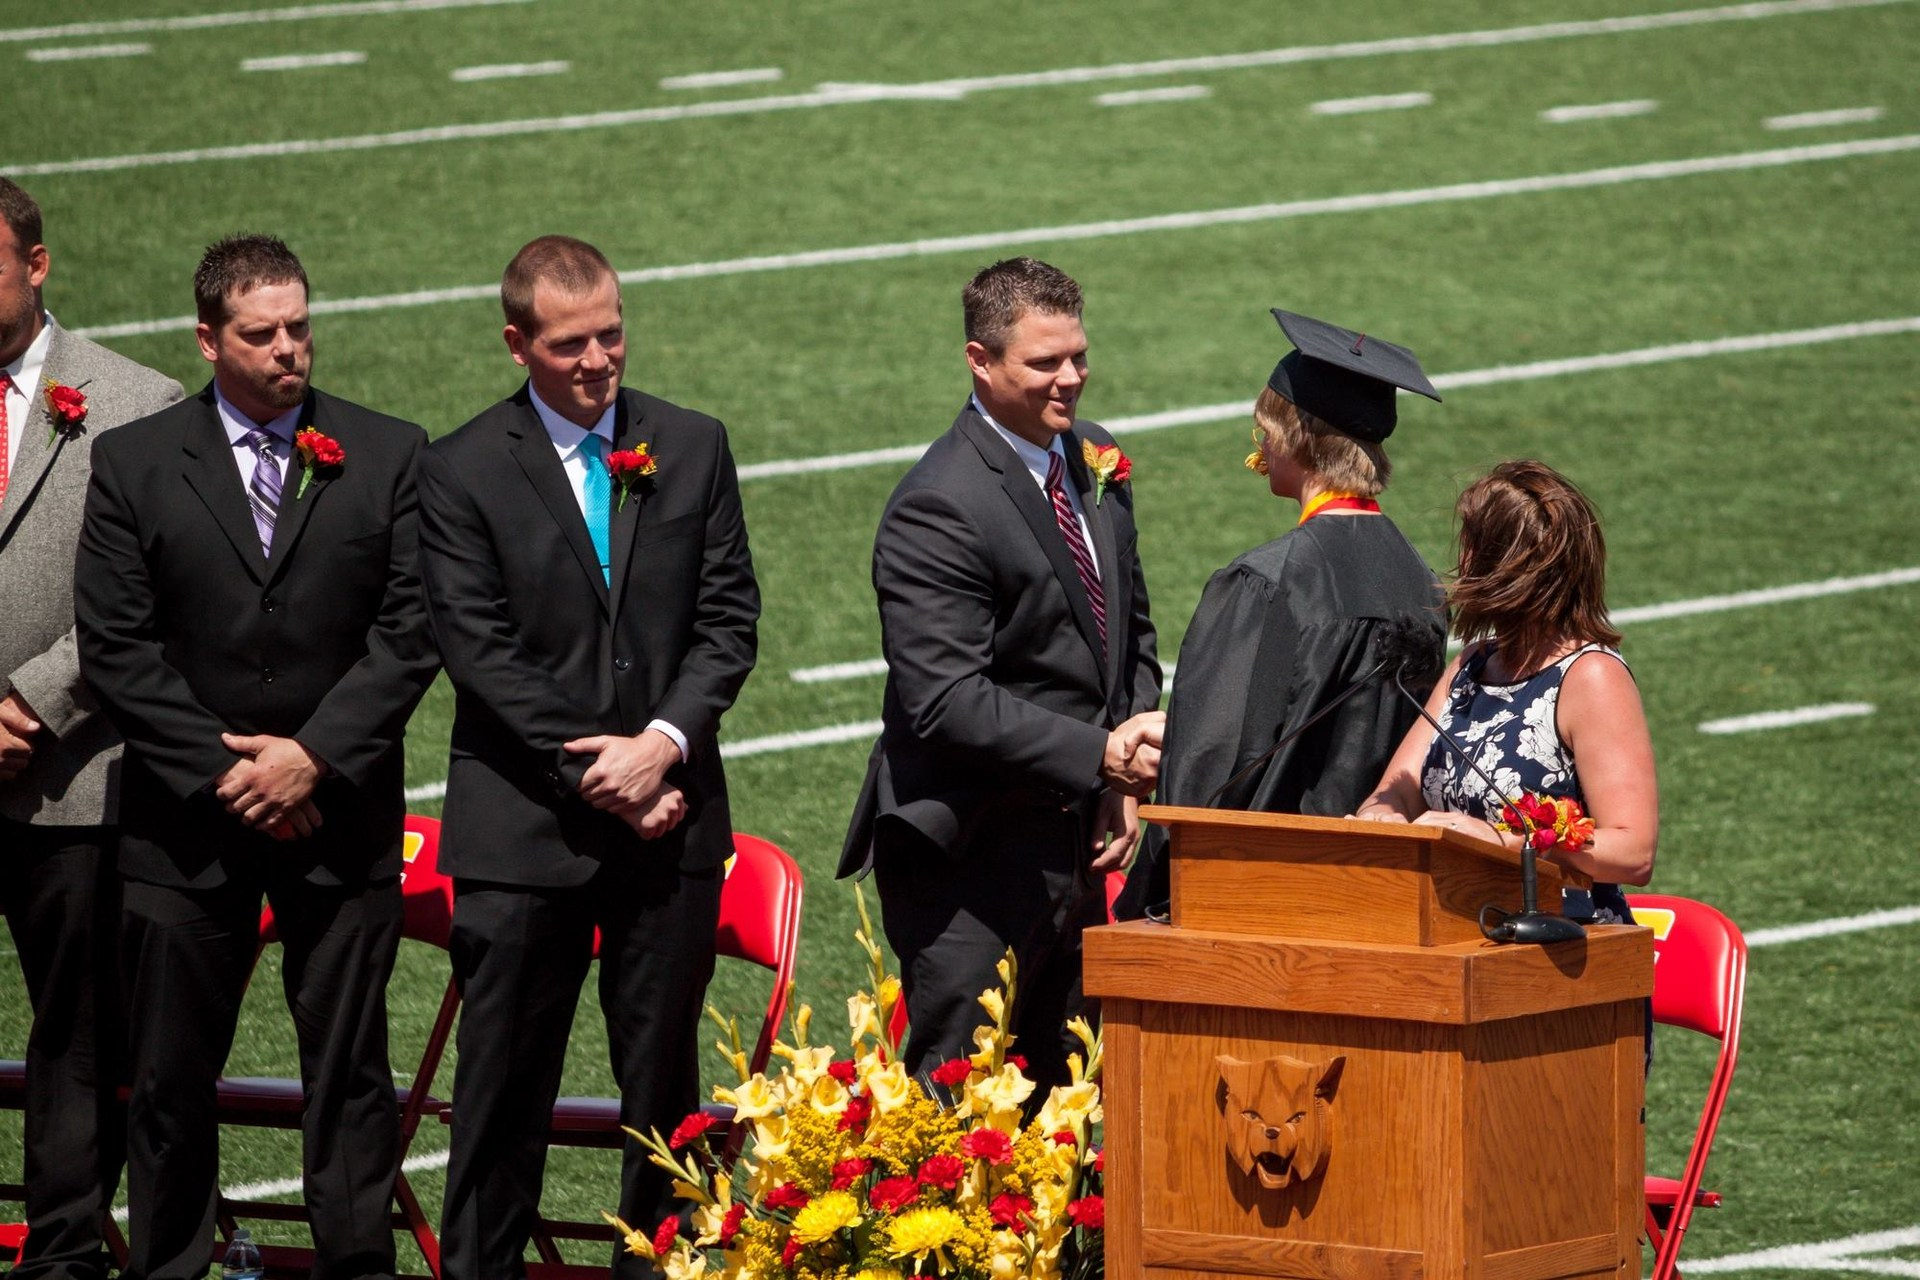 Blackmore shaking hands with student